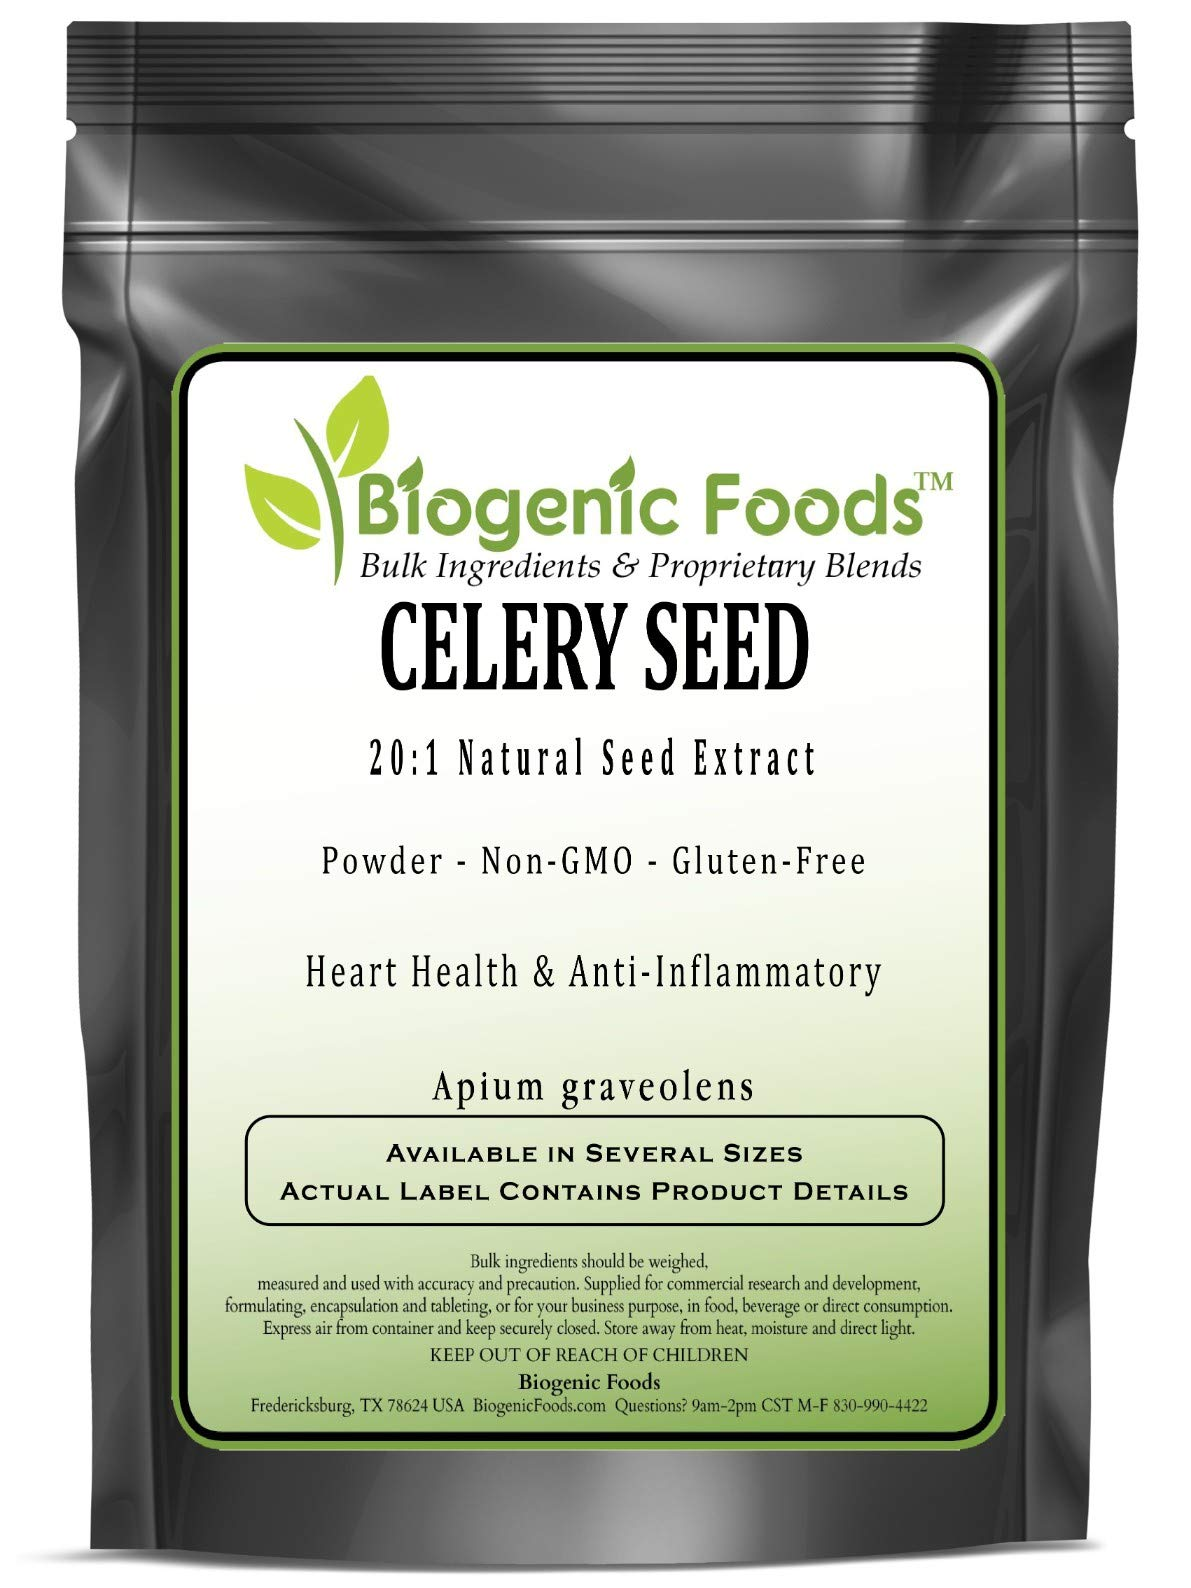 Celery Seed - 20:1 Natural Seed Powder Extract (Apium graveolens), 1 kg by Biogenic Foods (Image #1)